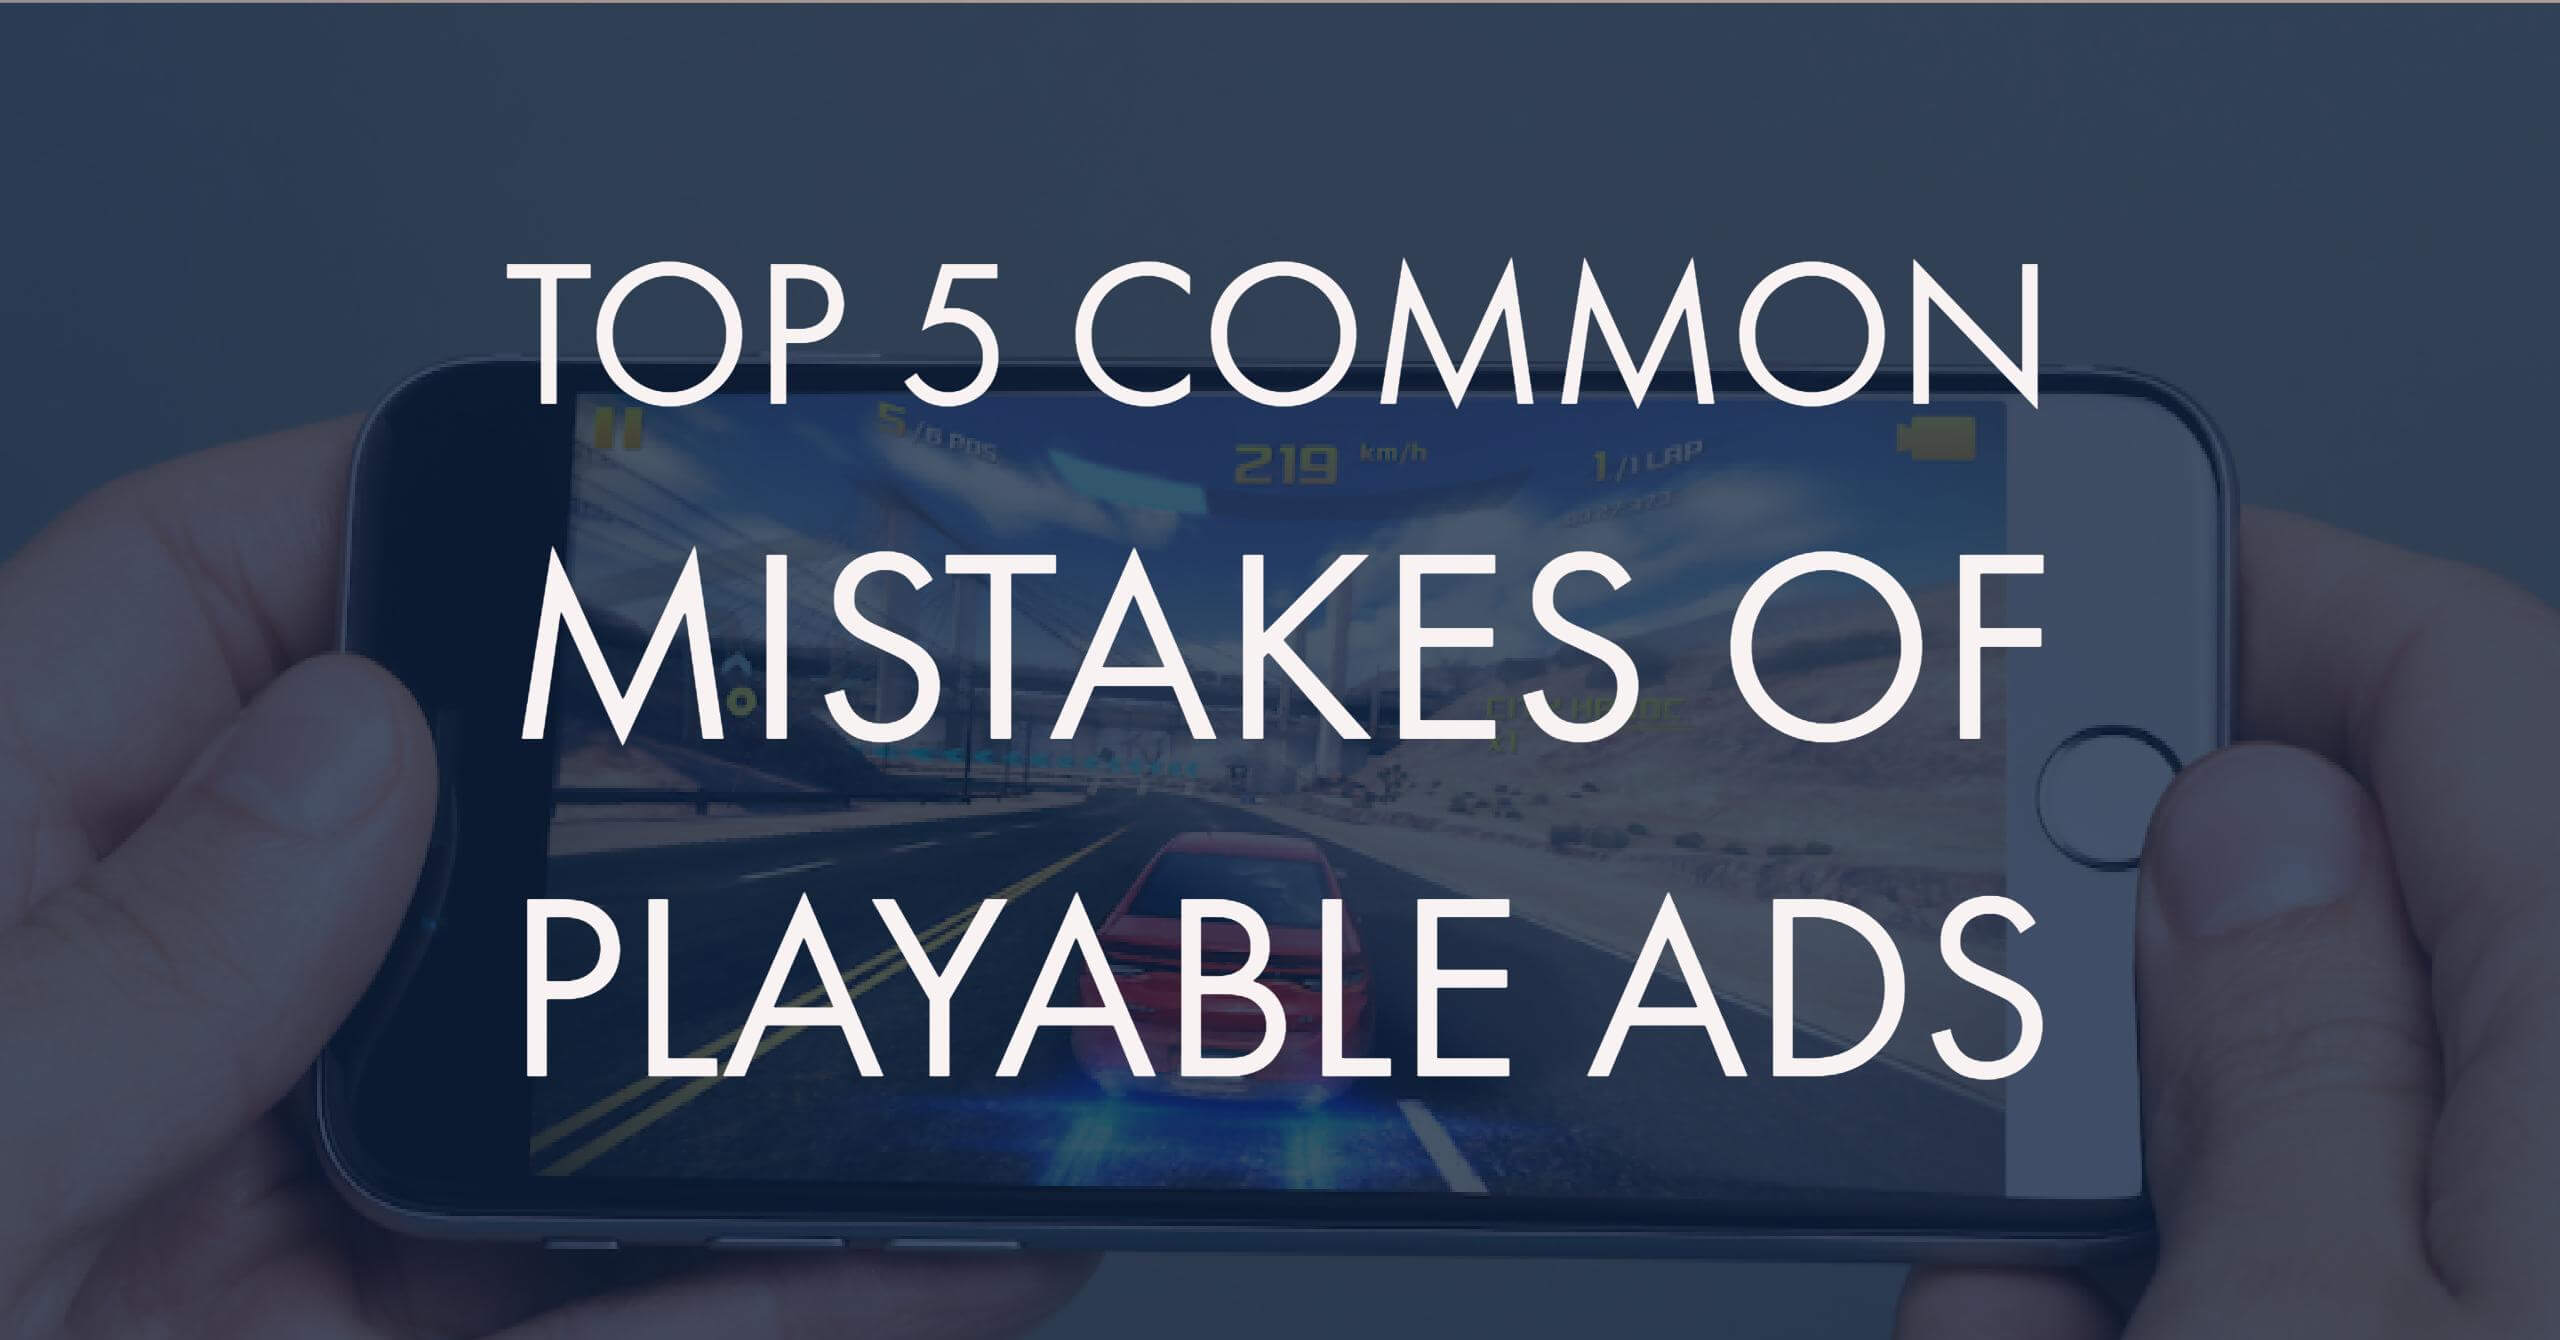 Top 5 Commons Mistakes of Playable Ads